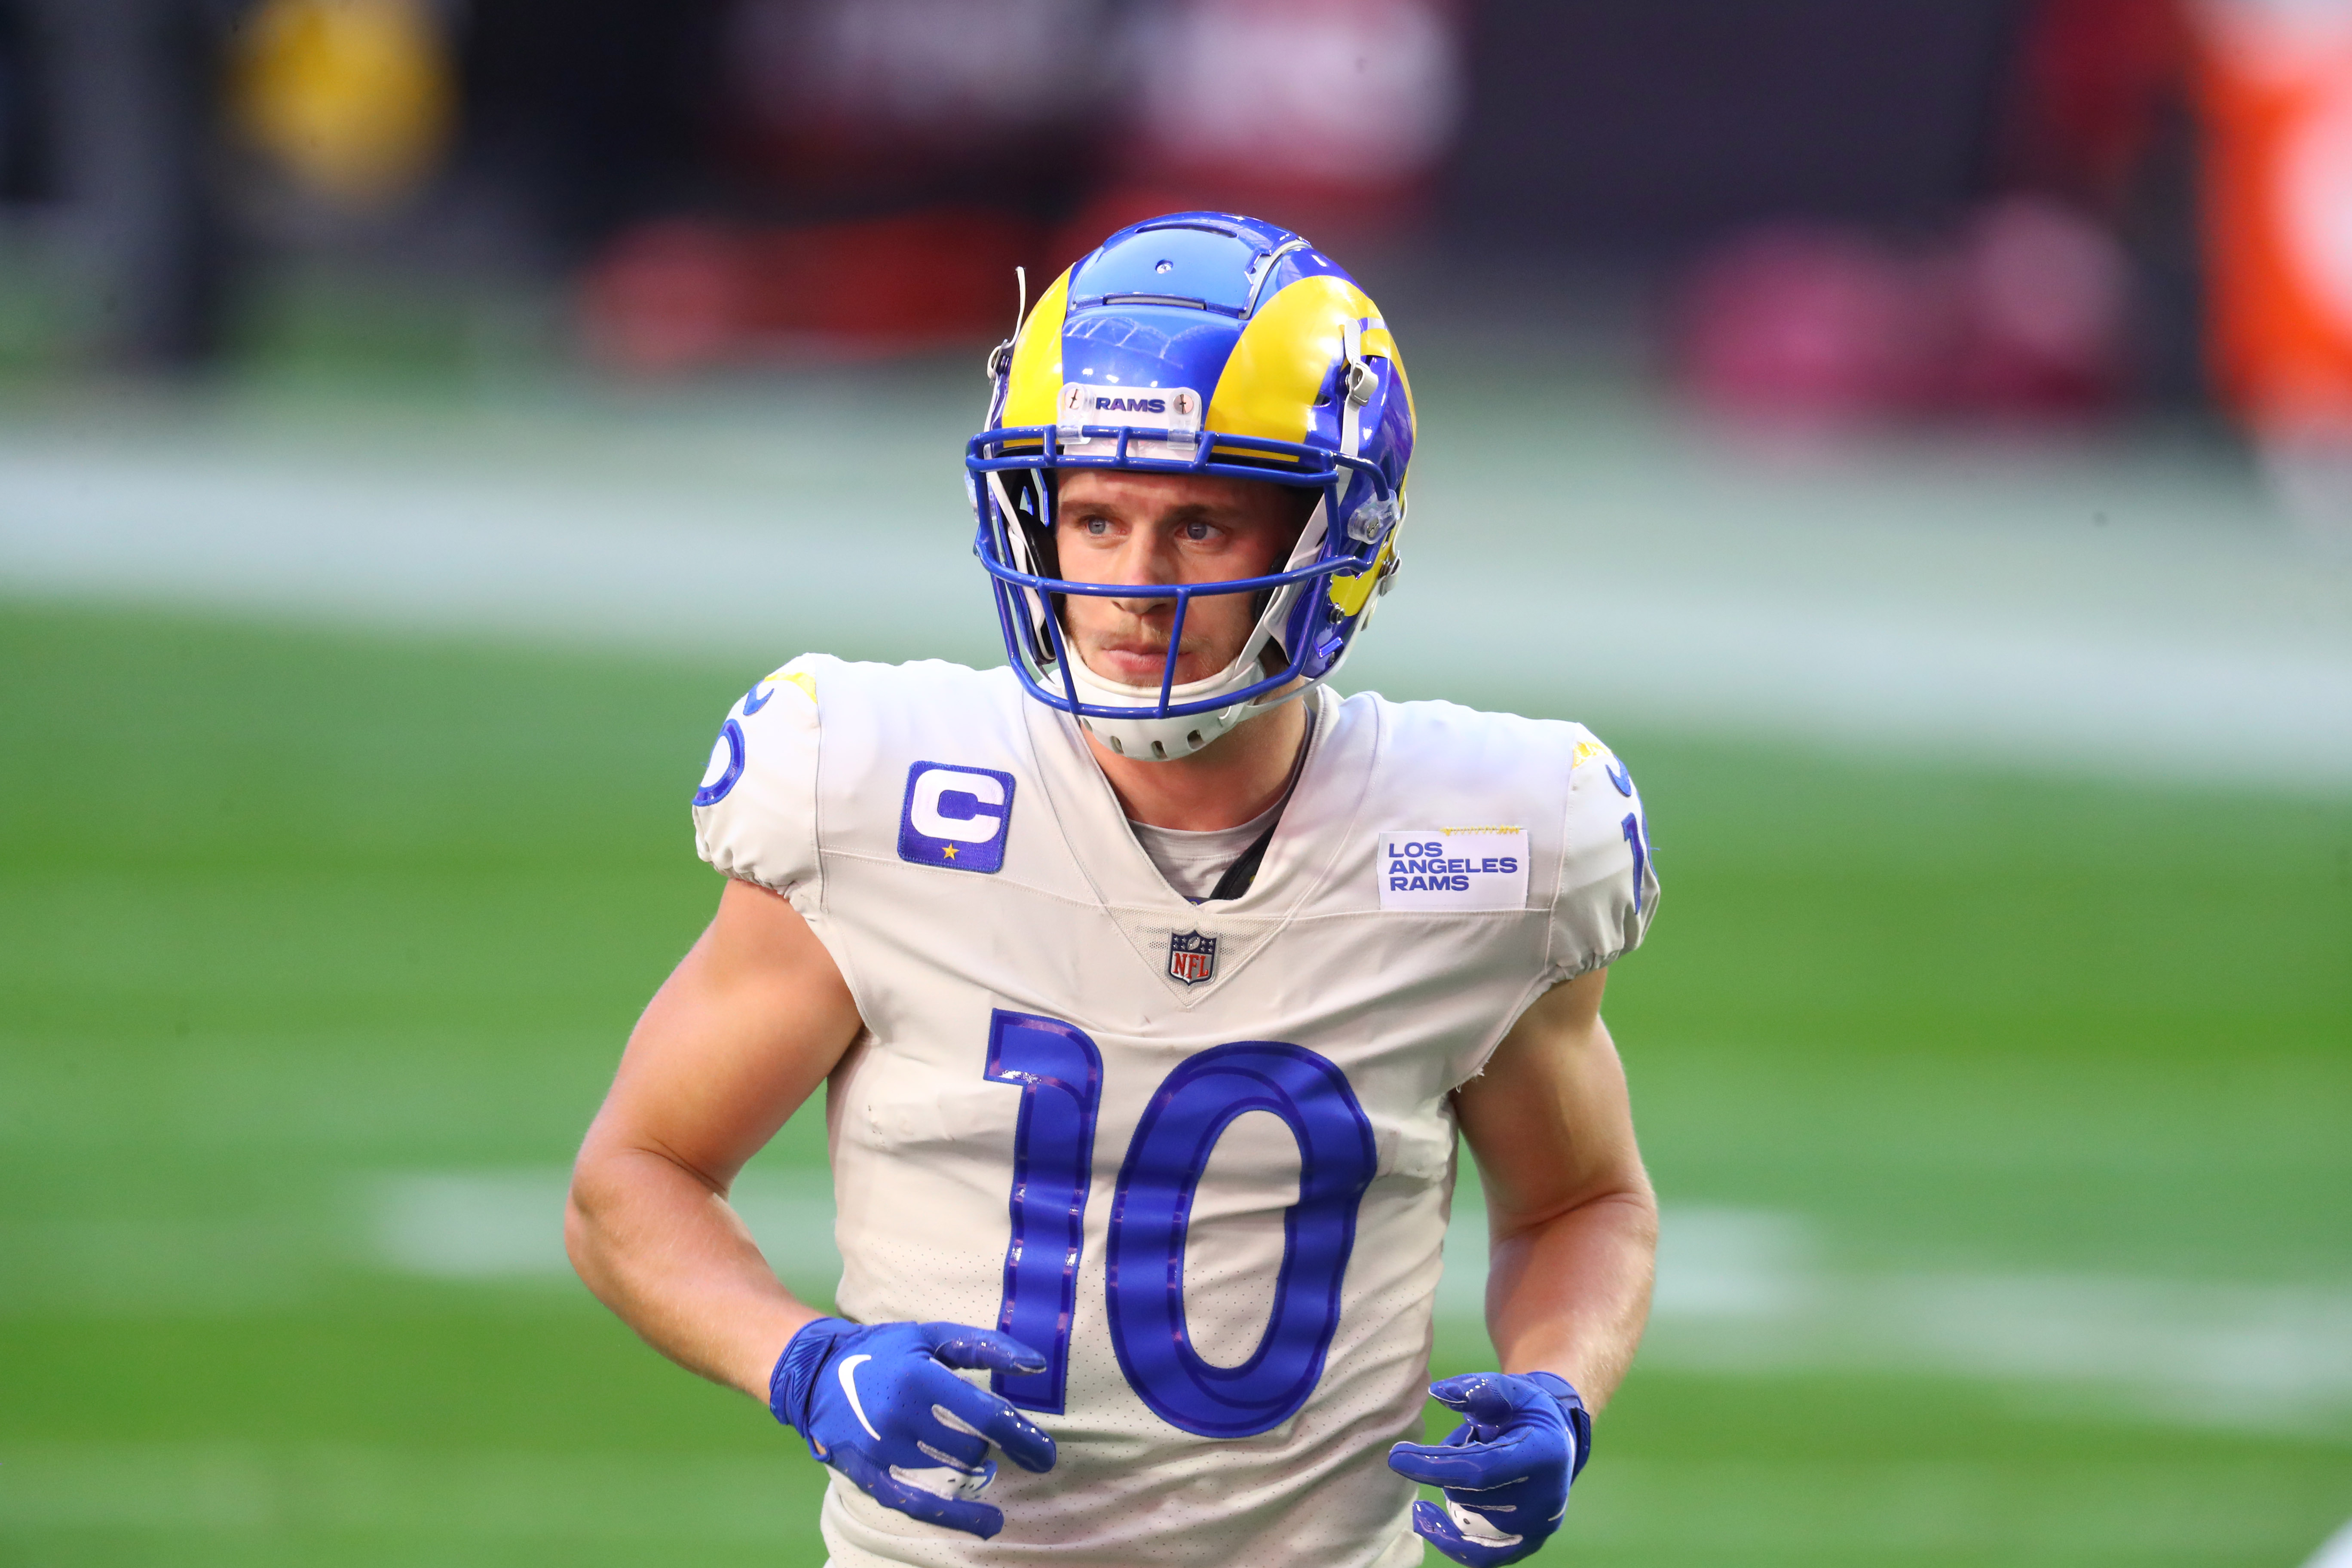 Los Angeles Rams wide receiver Cooper Kupp (10) against the Arizona Cardinals at State Farm Stadium.